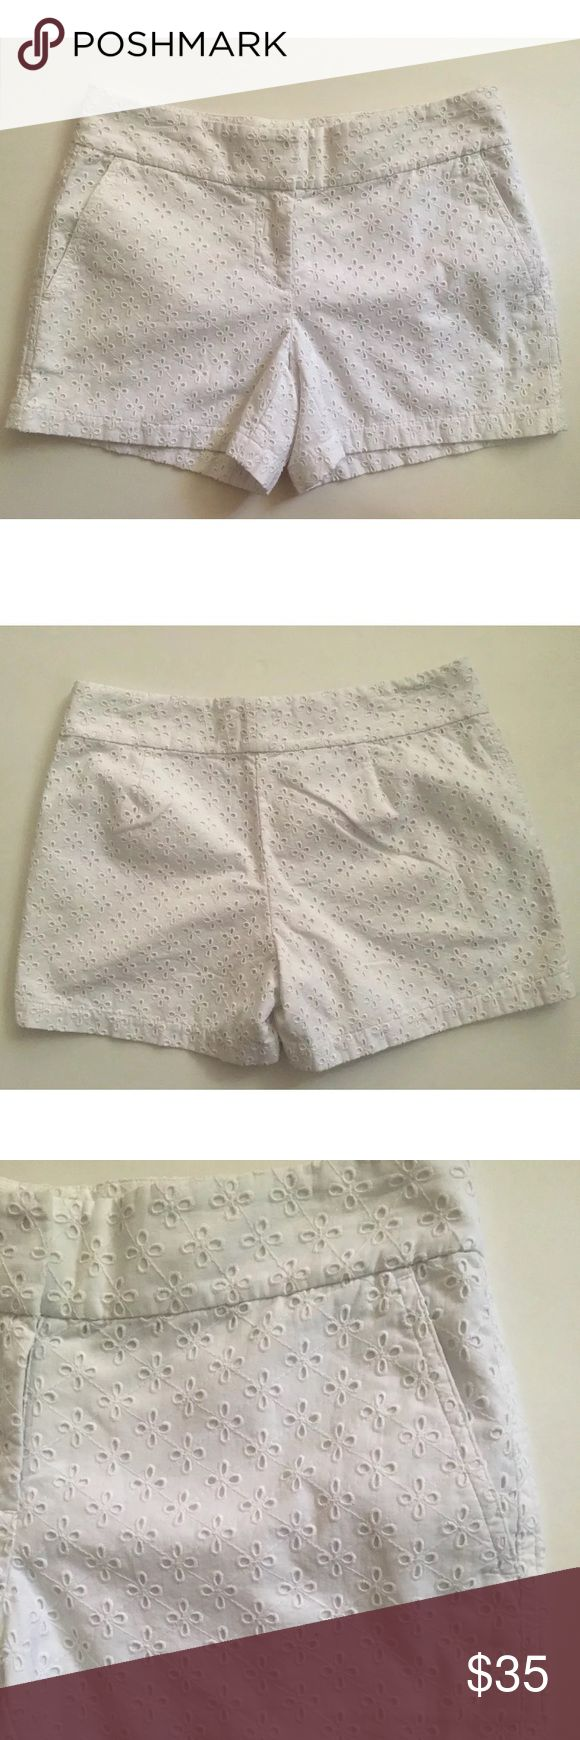 "Vineyard Vines White Eyelet Shorts White Eyelet shorts with front pockets. The tag has a black marking (last pic).                                                          Measurements taken flat  Waist 15"" Rise 8"" Inseam 4"" Vineyard Vines Shorts"